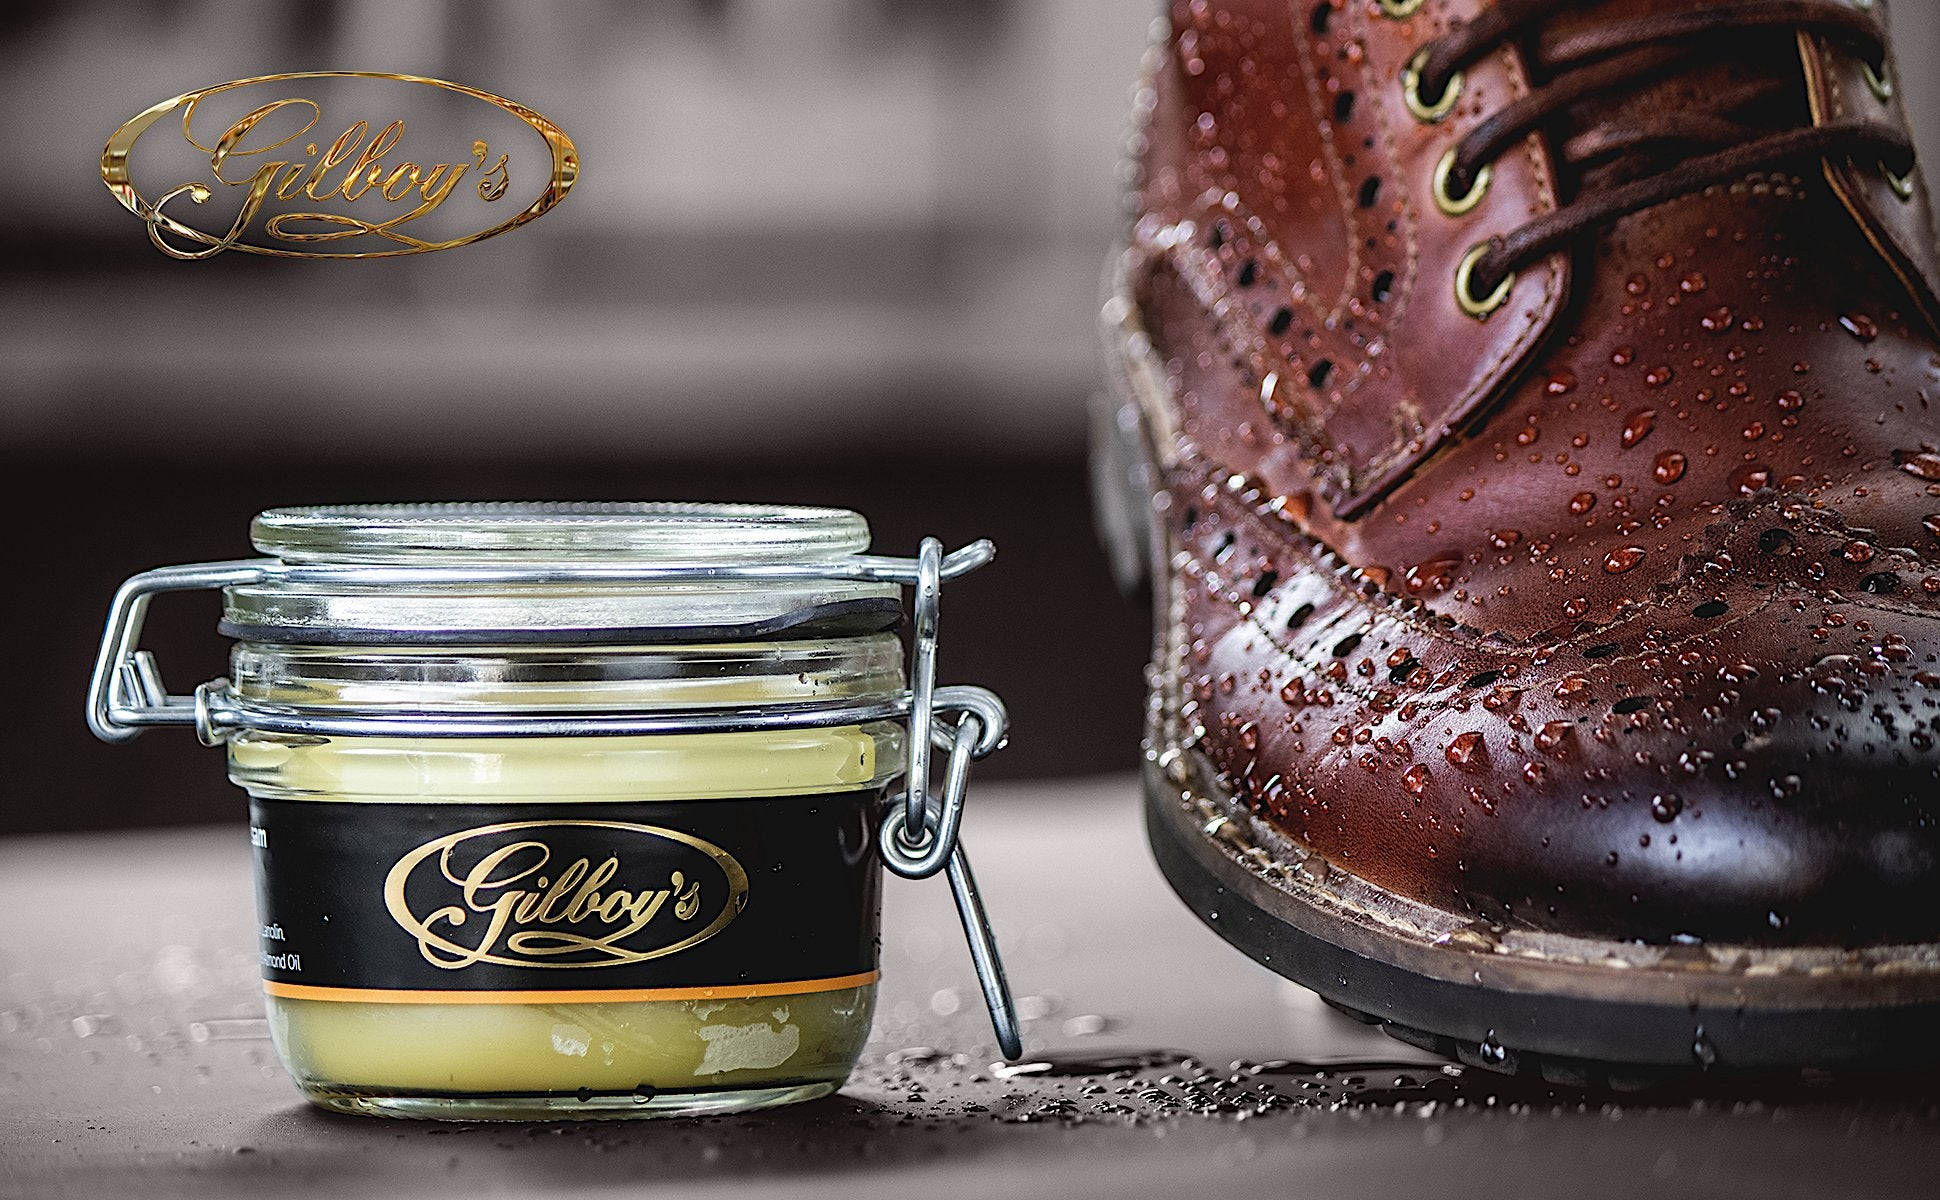 Gilboys beeswax balsam for waterproofing leather shoes